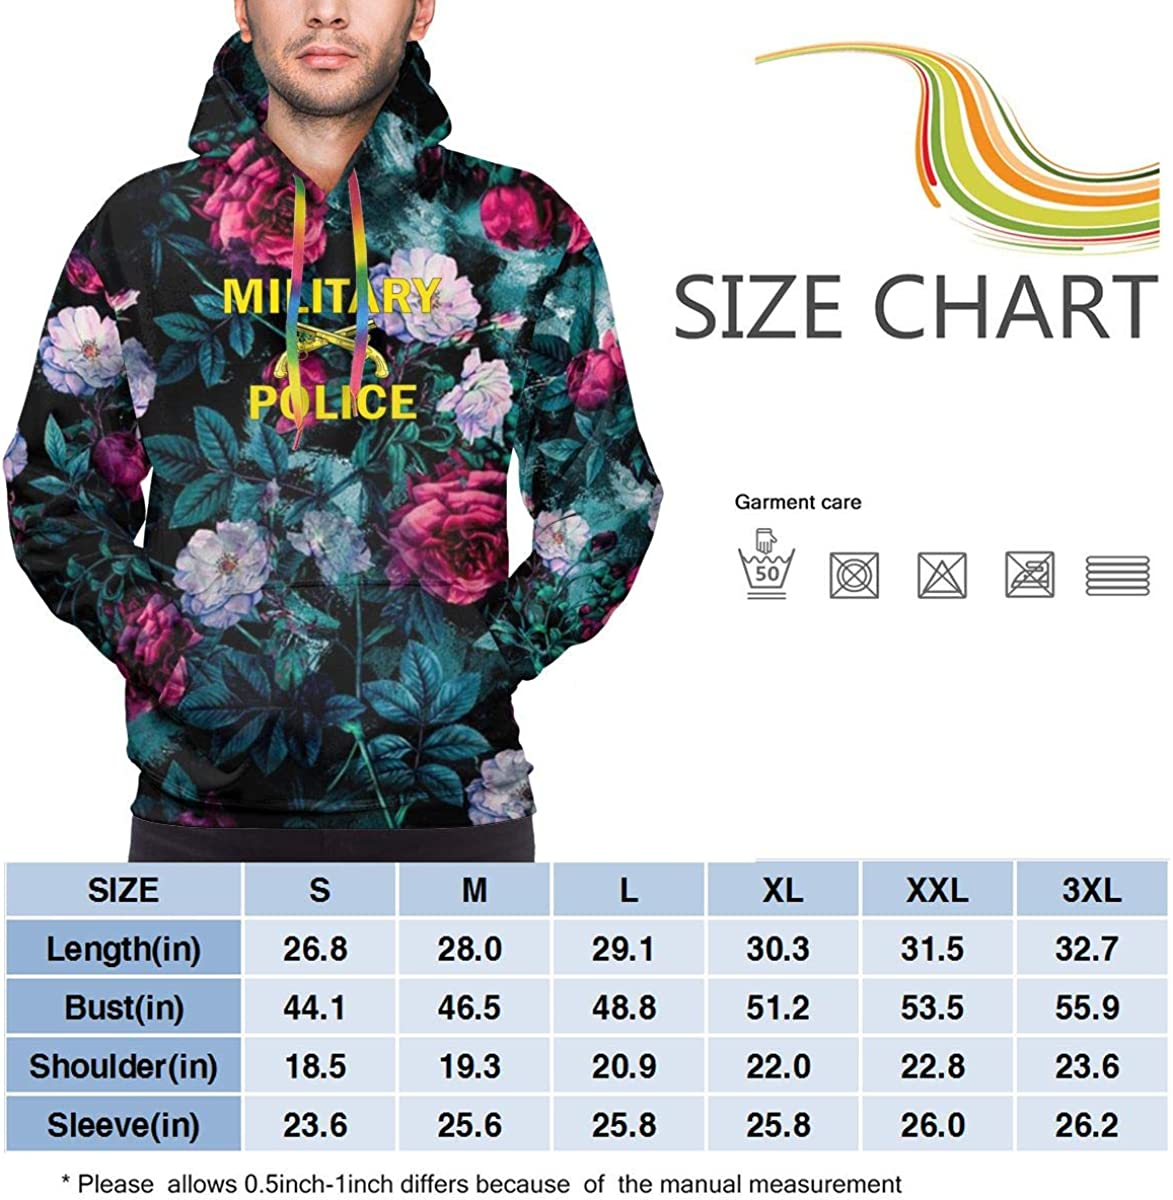 MUSICOT Mens Athletic Pullover Cozy Sport Outwear Military Police Sweatshirt Hoodies